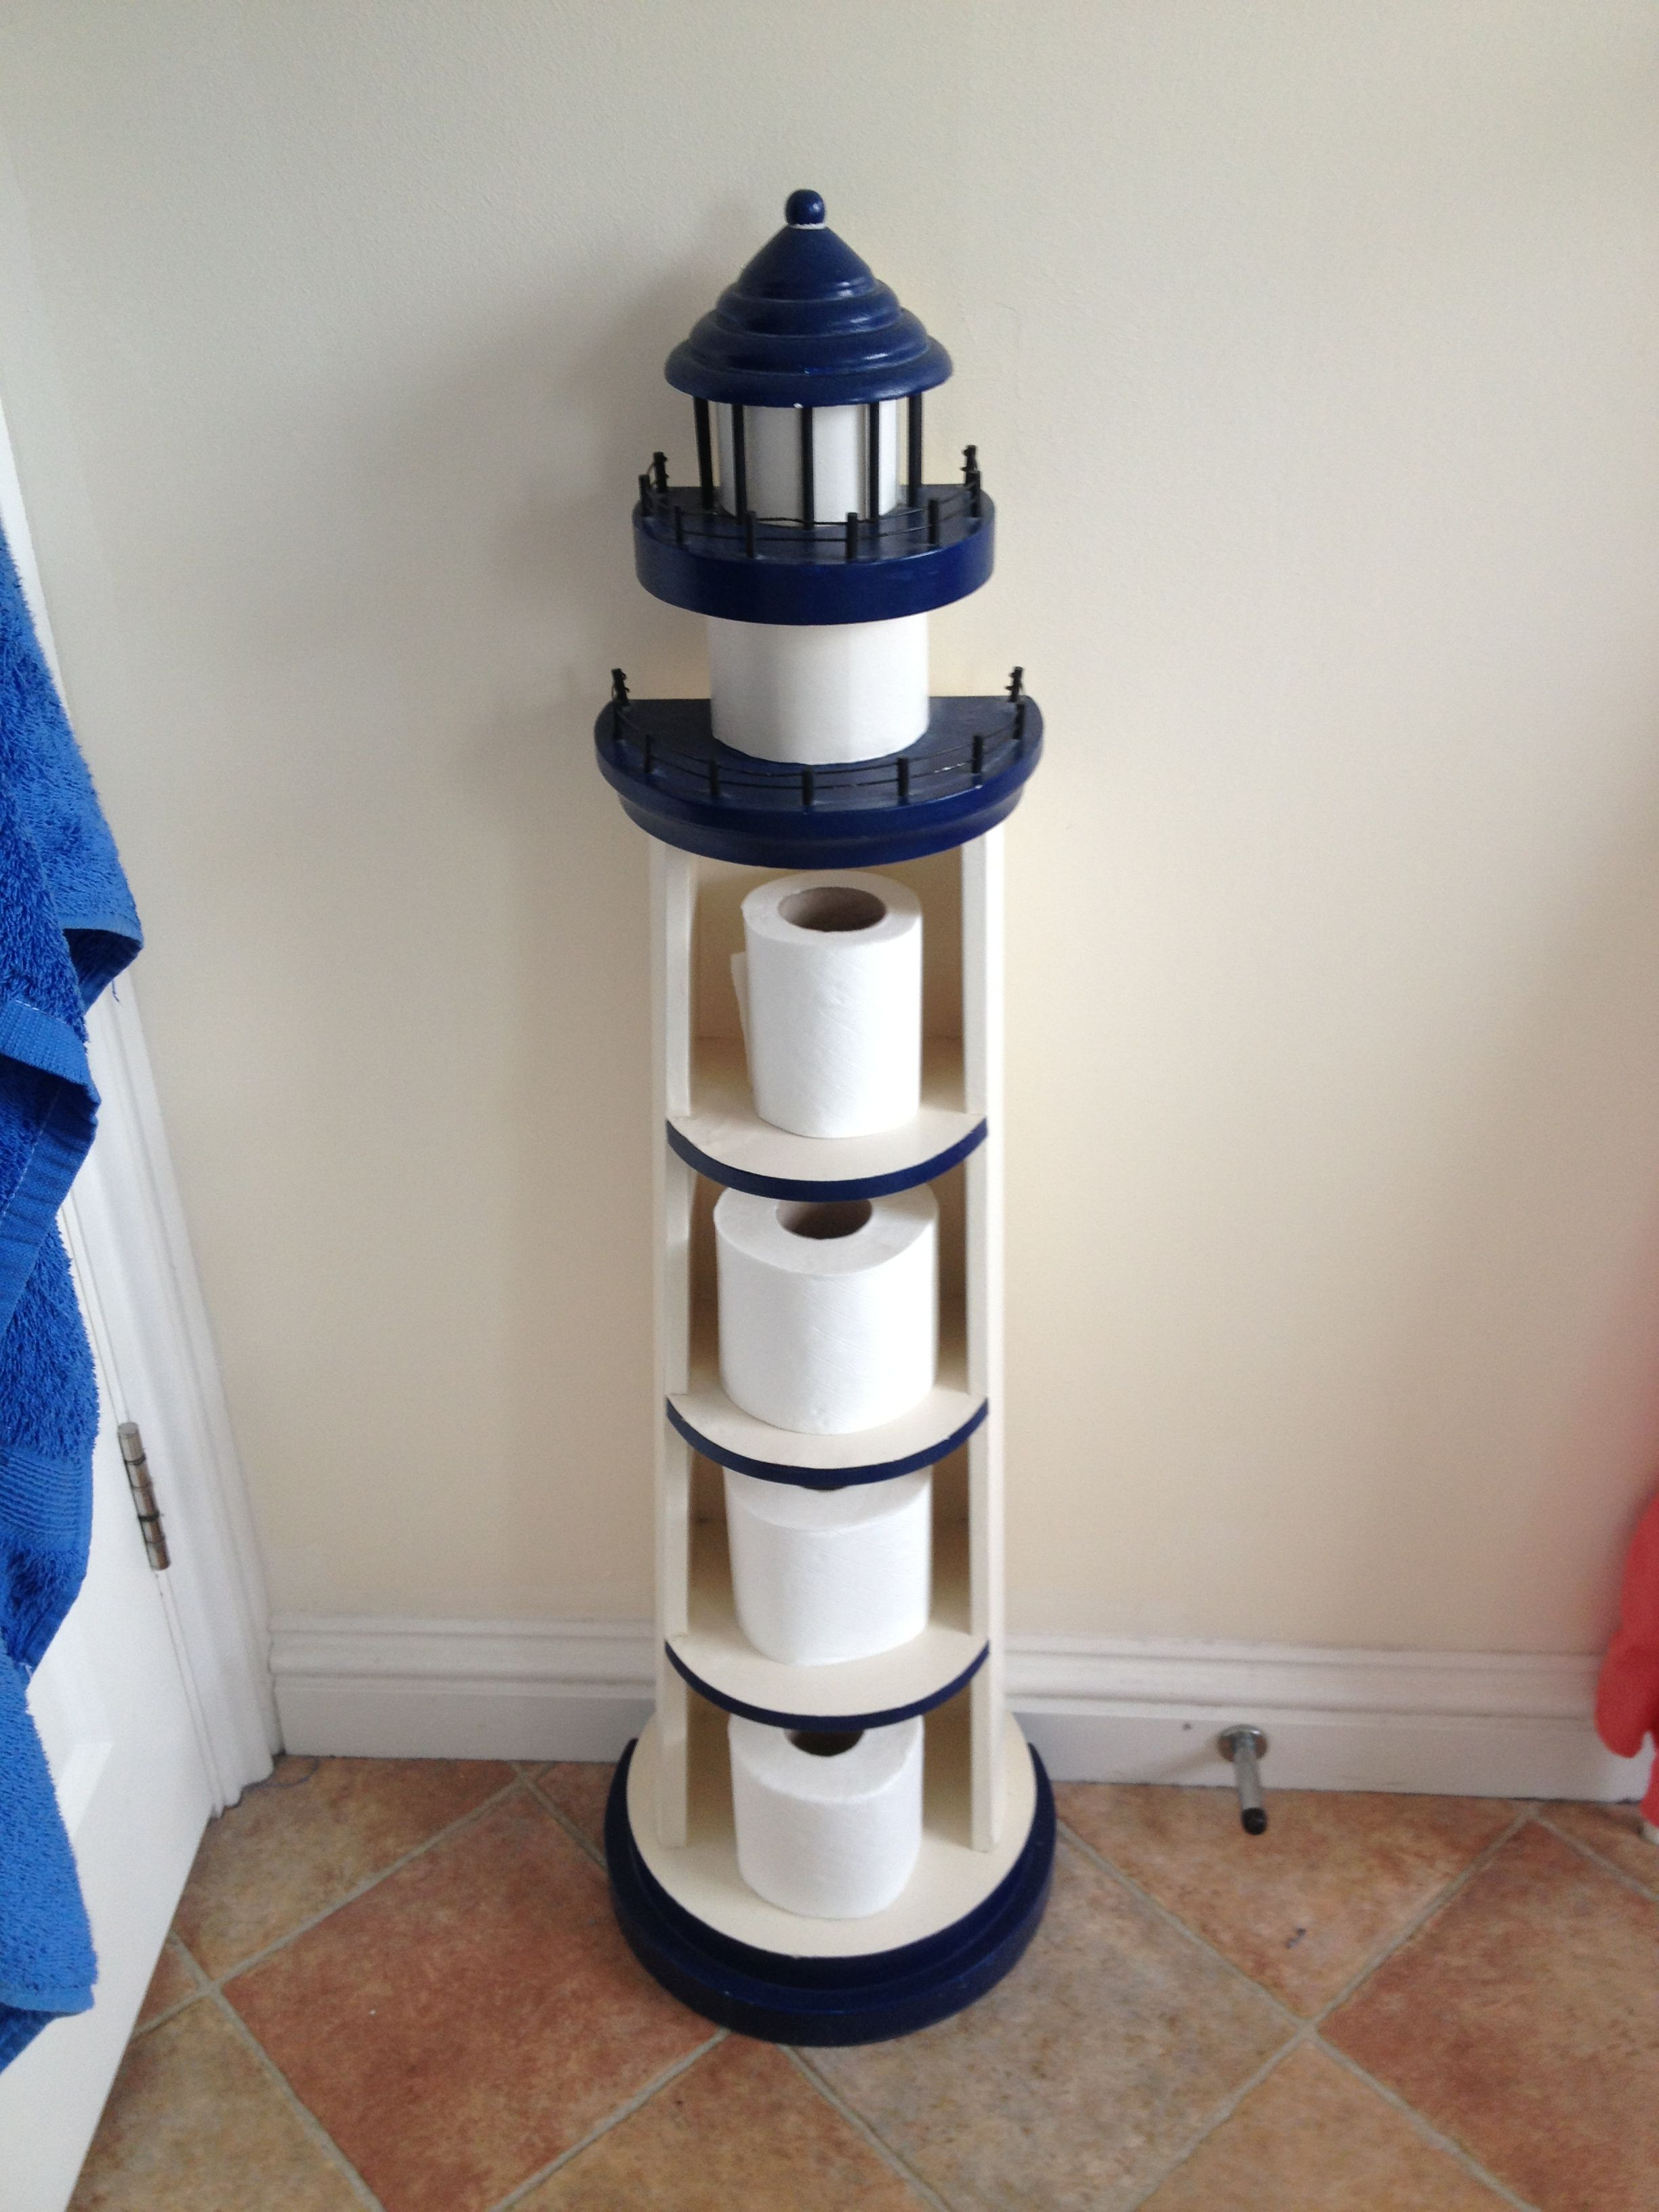 Lighthouse Bathroom Decor | Atlantis Black In 2019 Future Home Pinterest Nautical Bathroom